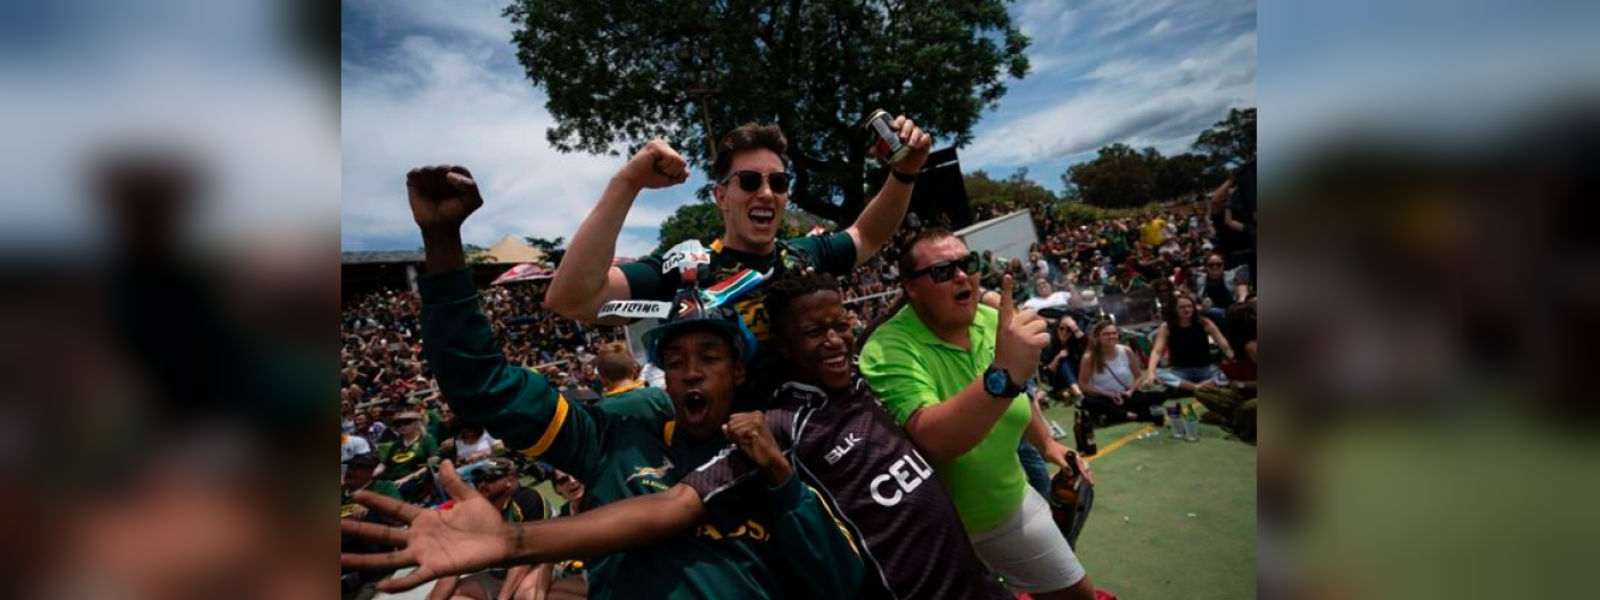 South Africa rejoices as world champion Springboks arrive home with Webb Ellis Cup